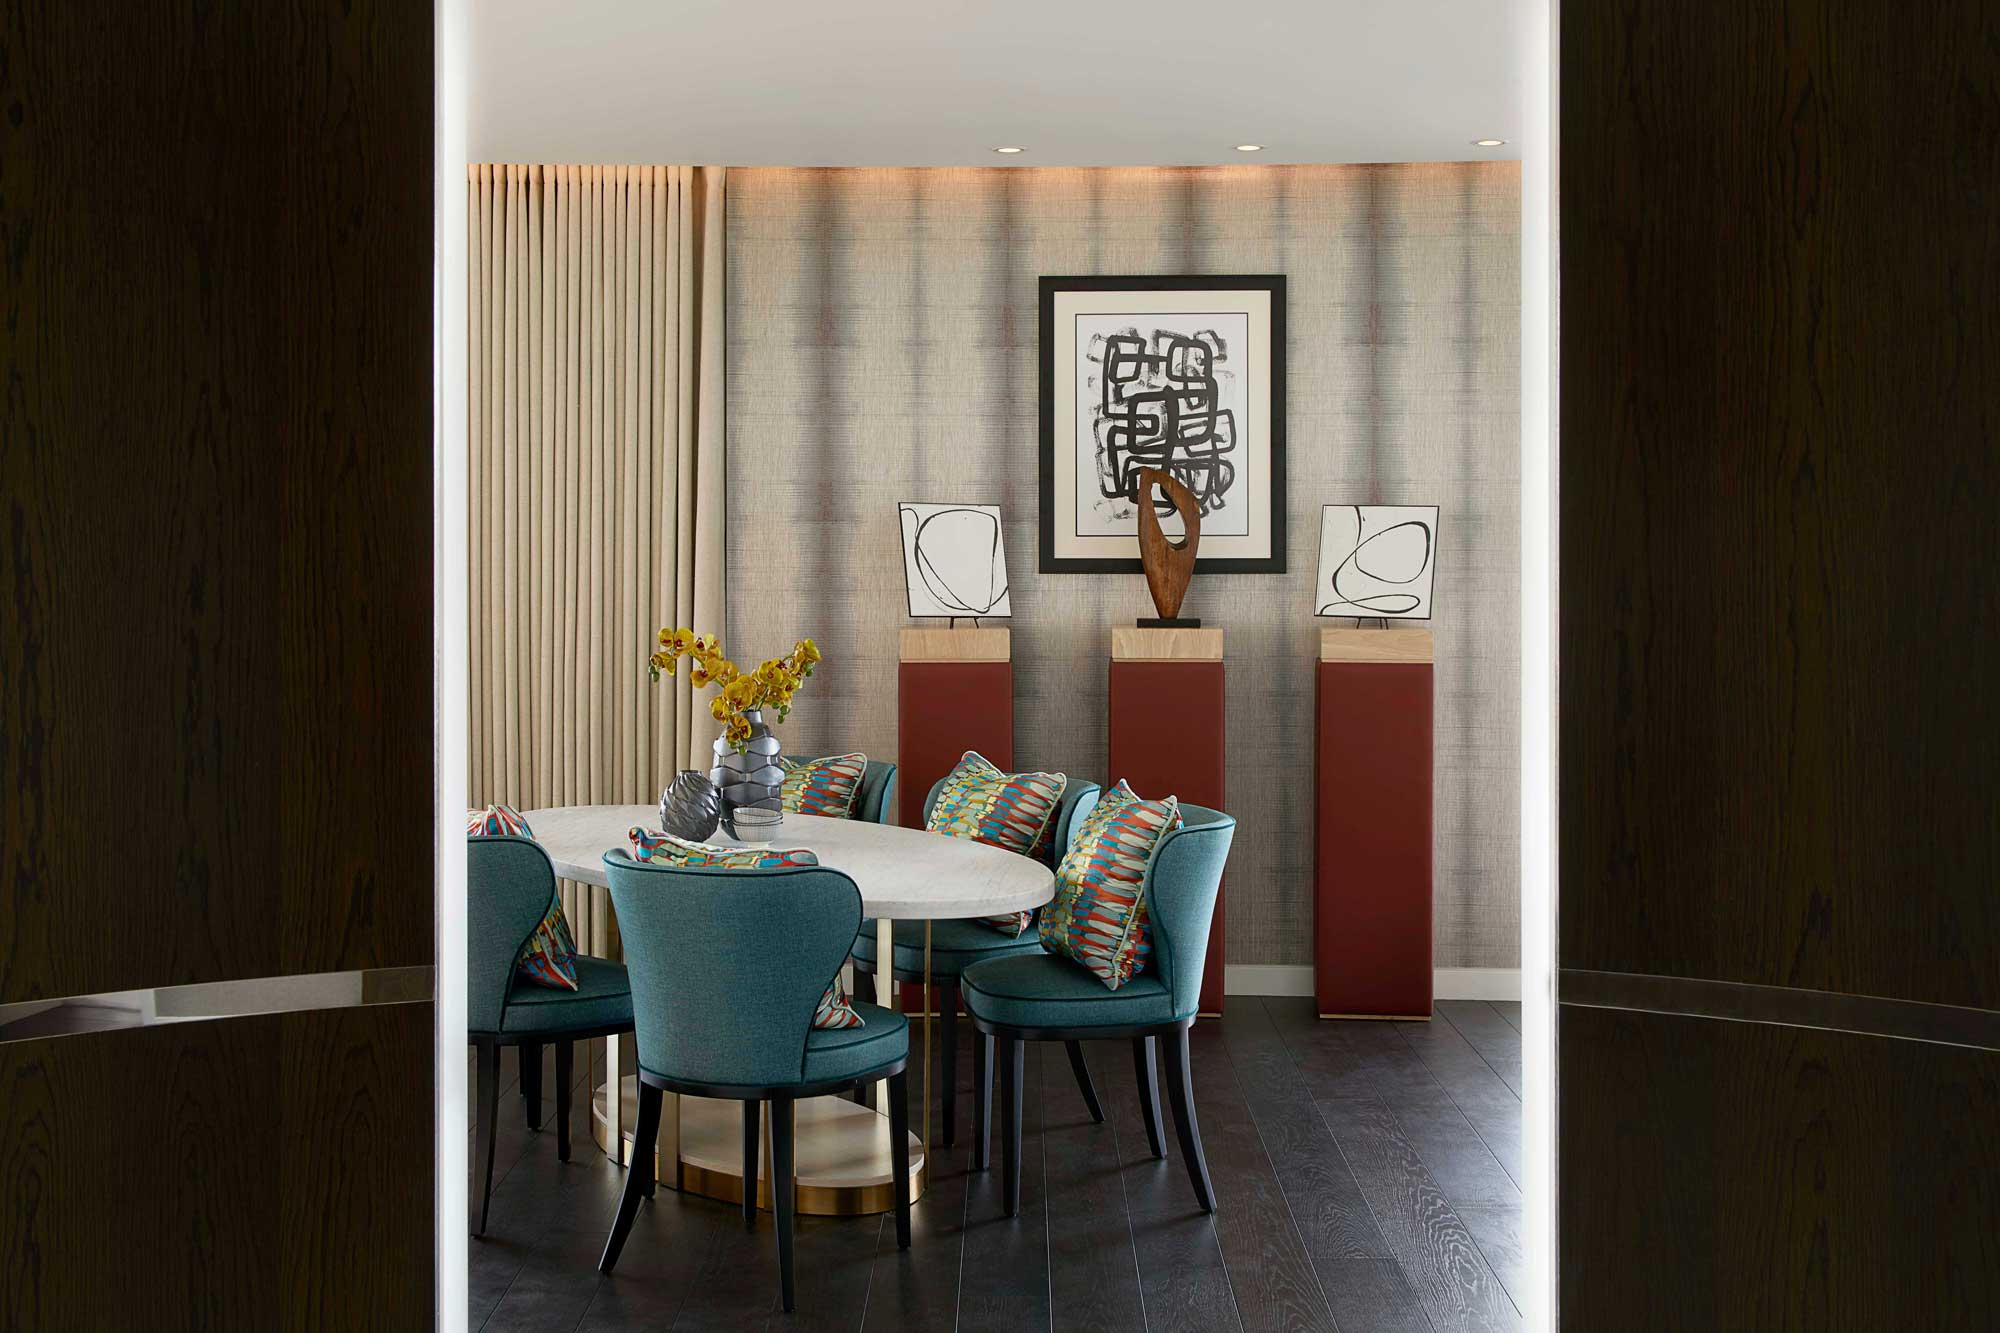 How Morpheus London Brought the River Into this Westminster Apartment westminster apartment How Morpheus London Brought the River Into this Westminster Apartment How Morpheus London Brought the River Into this Westminster Apartment 1